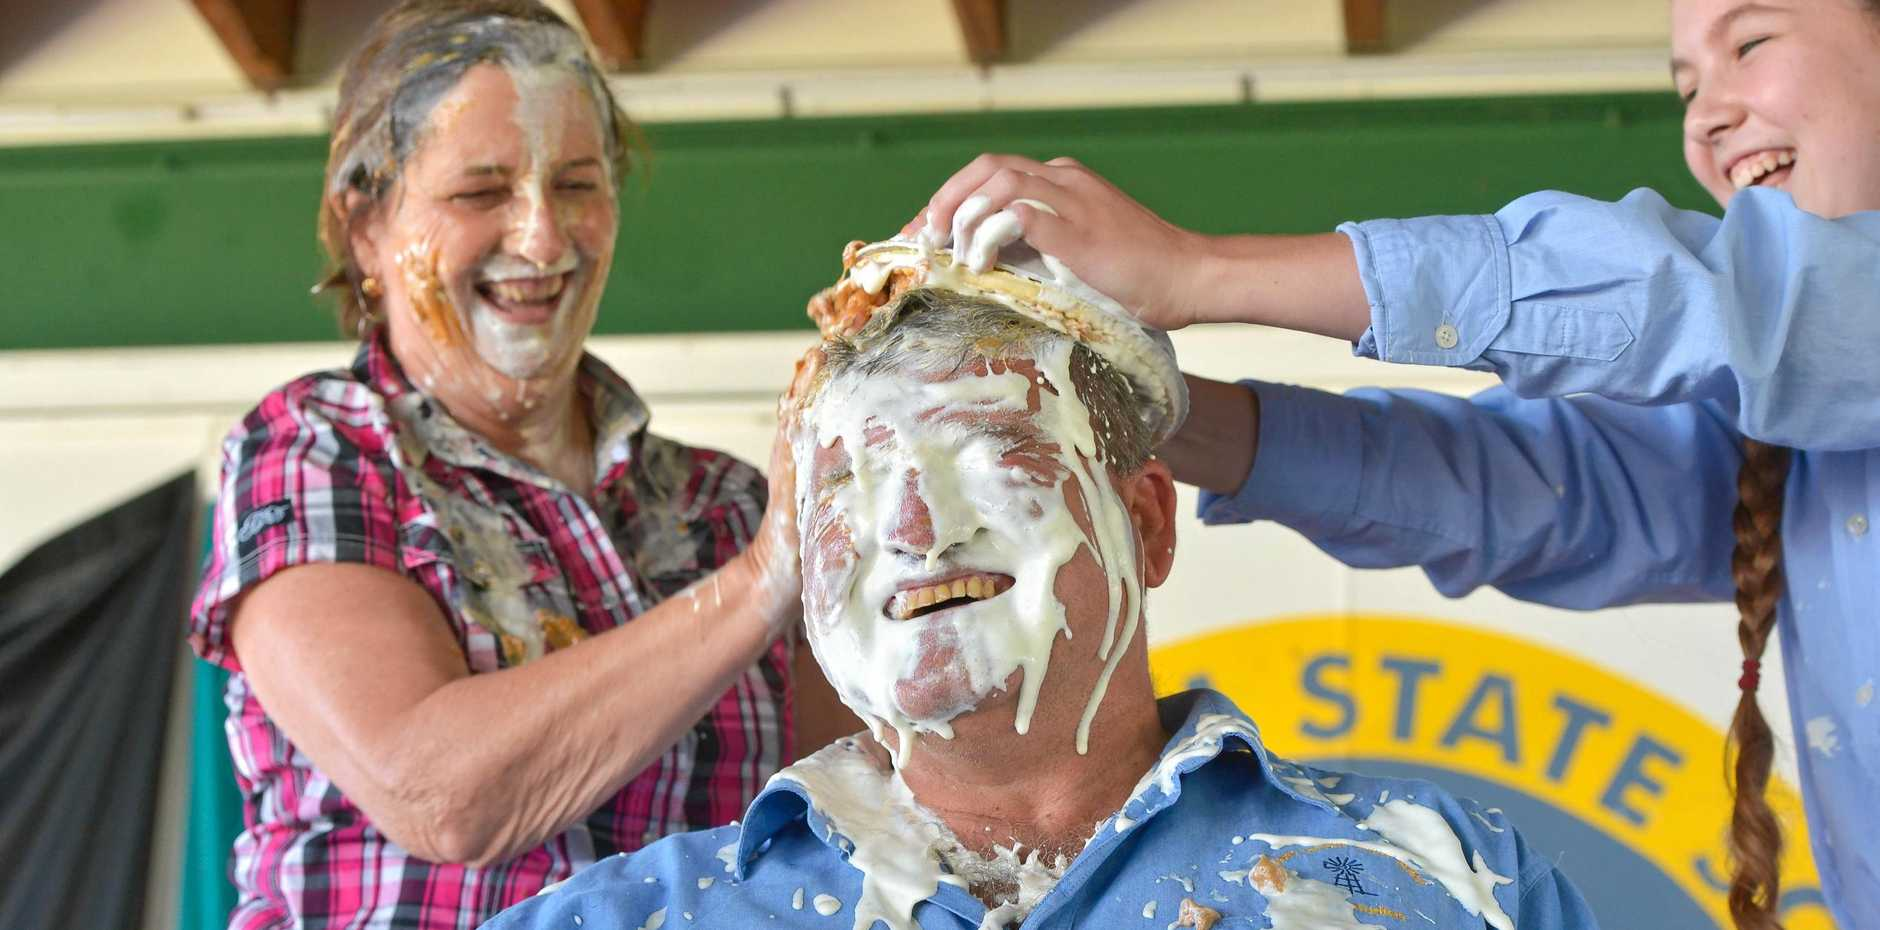 CREAMED: Mt Larcom State School principal Pauline Porch and student Shalom White have a laugh as teacher Norm Horan cops a caramel cream pie in the face. The school helped raise money for drought relief.